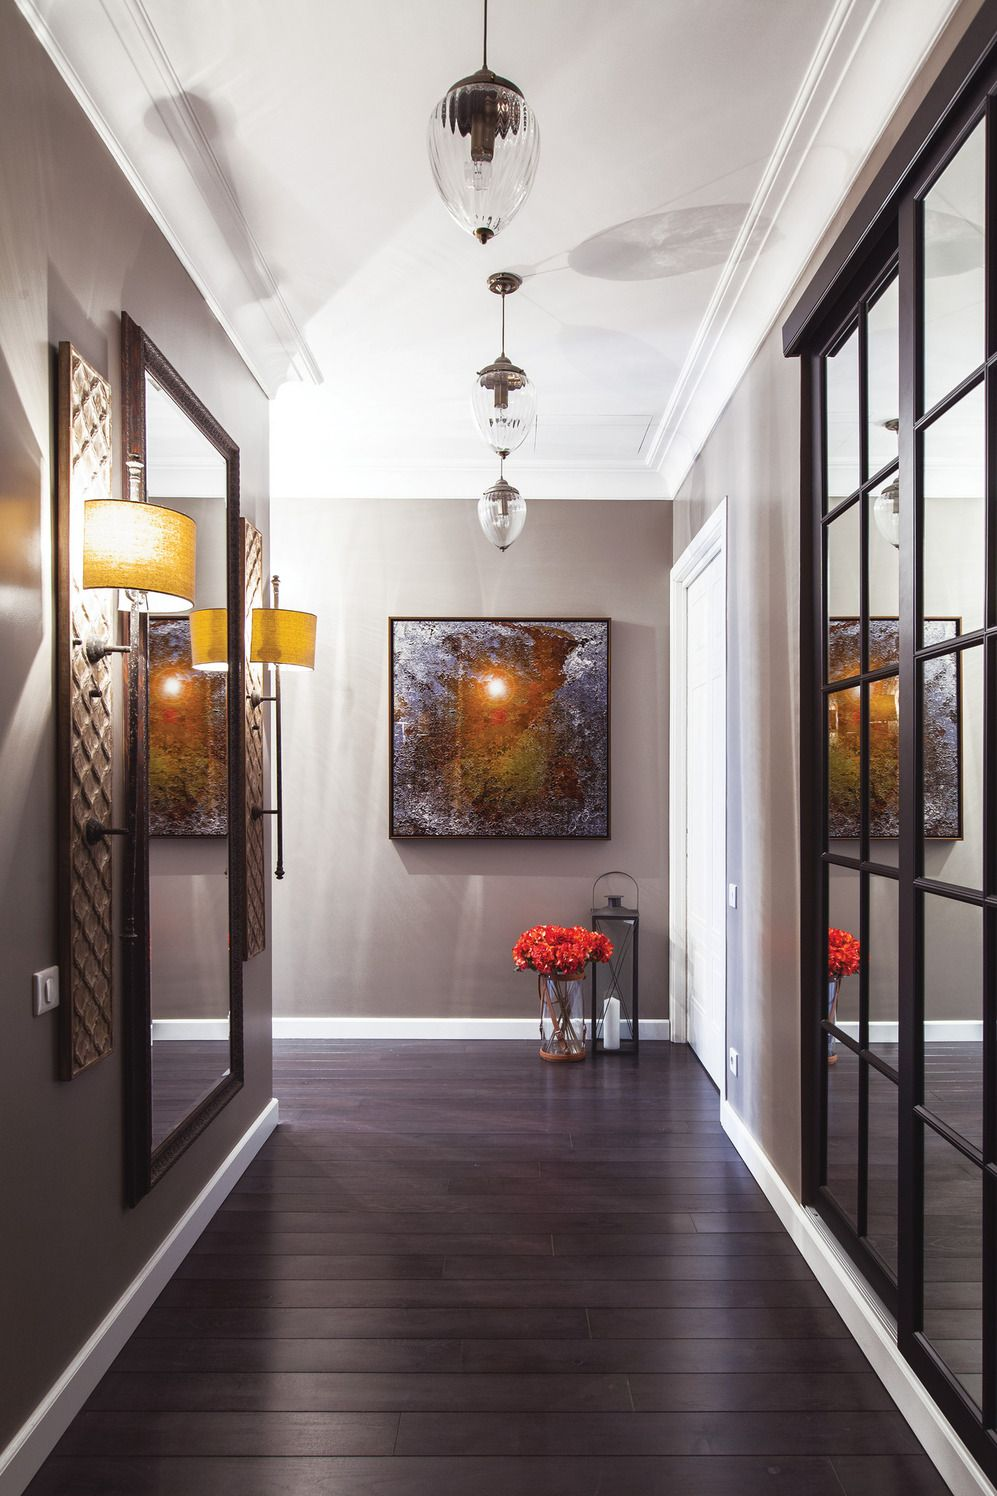 Modern Hallway Decoration Design Ideas. Complex lighting and natural dark wooden materials in the floor to emphasize the status of the space